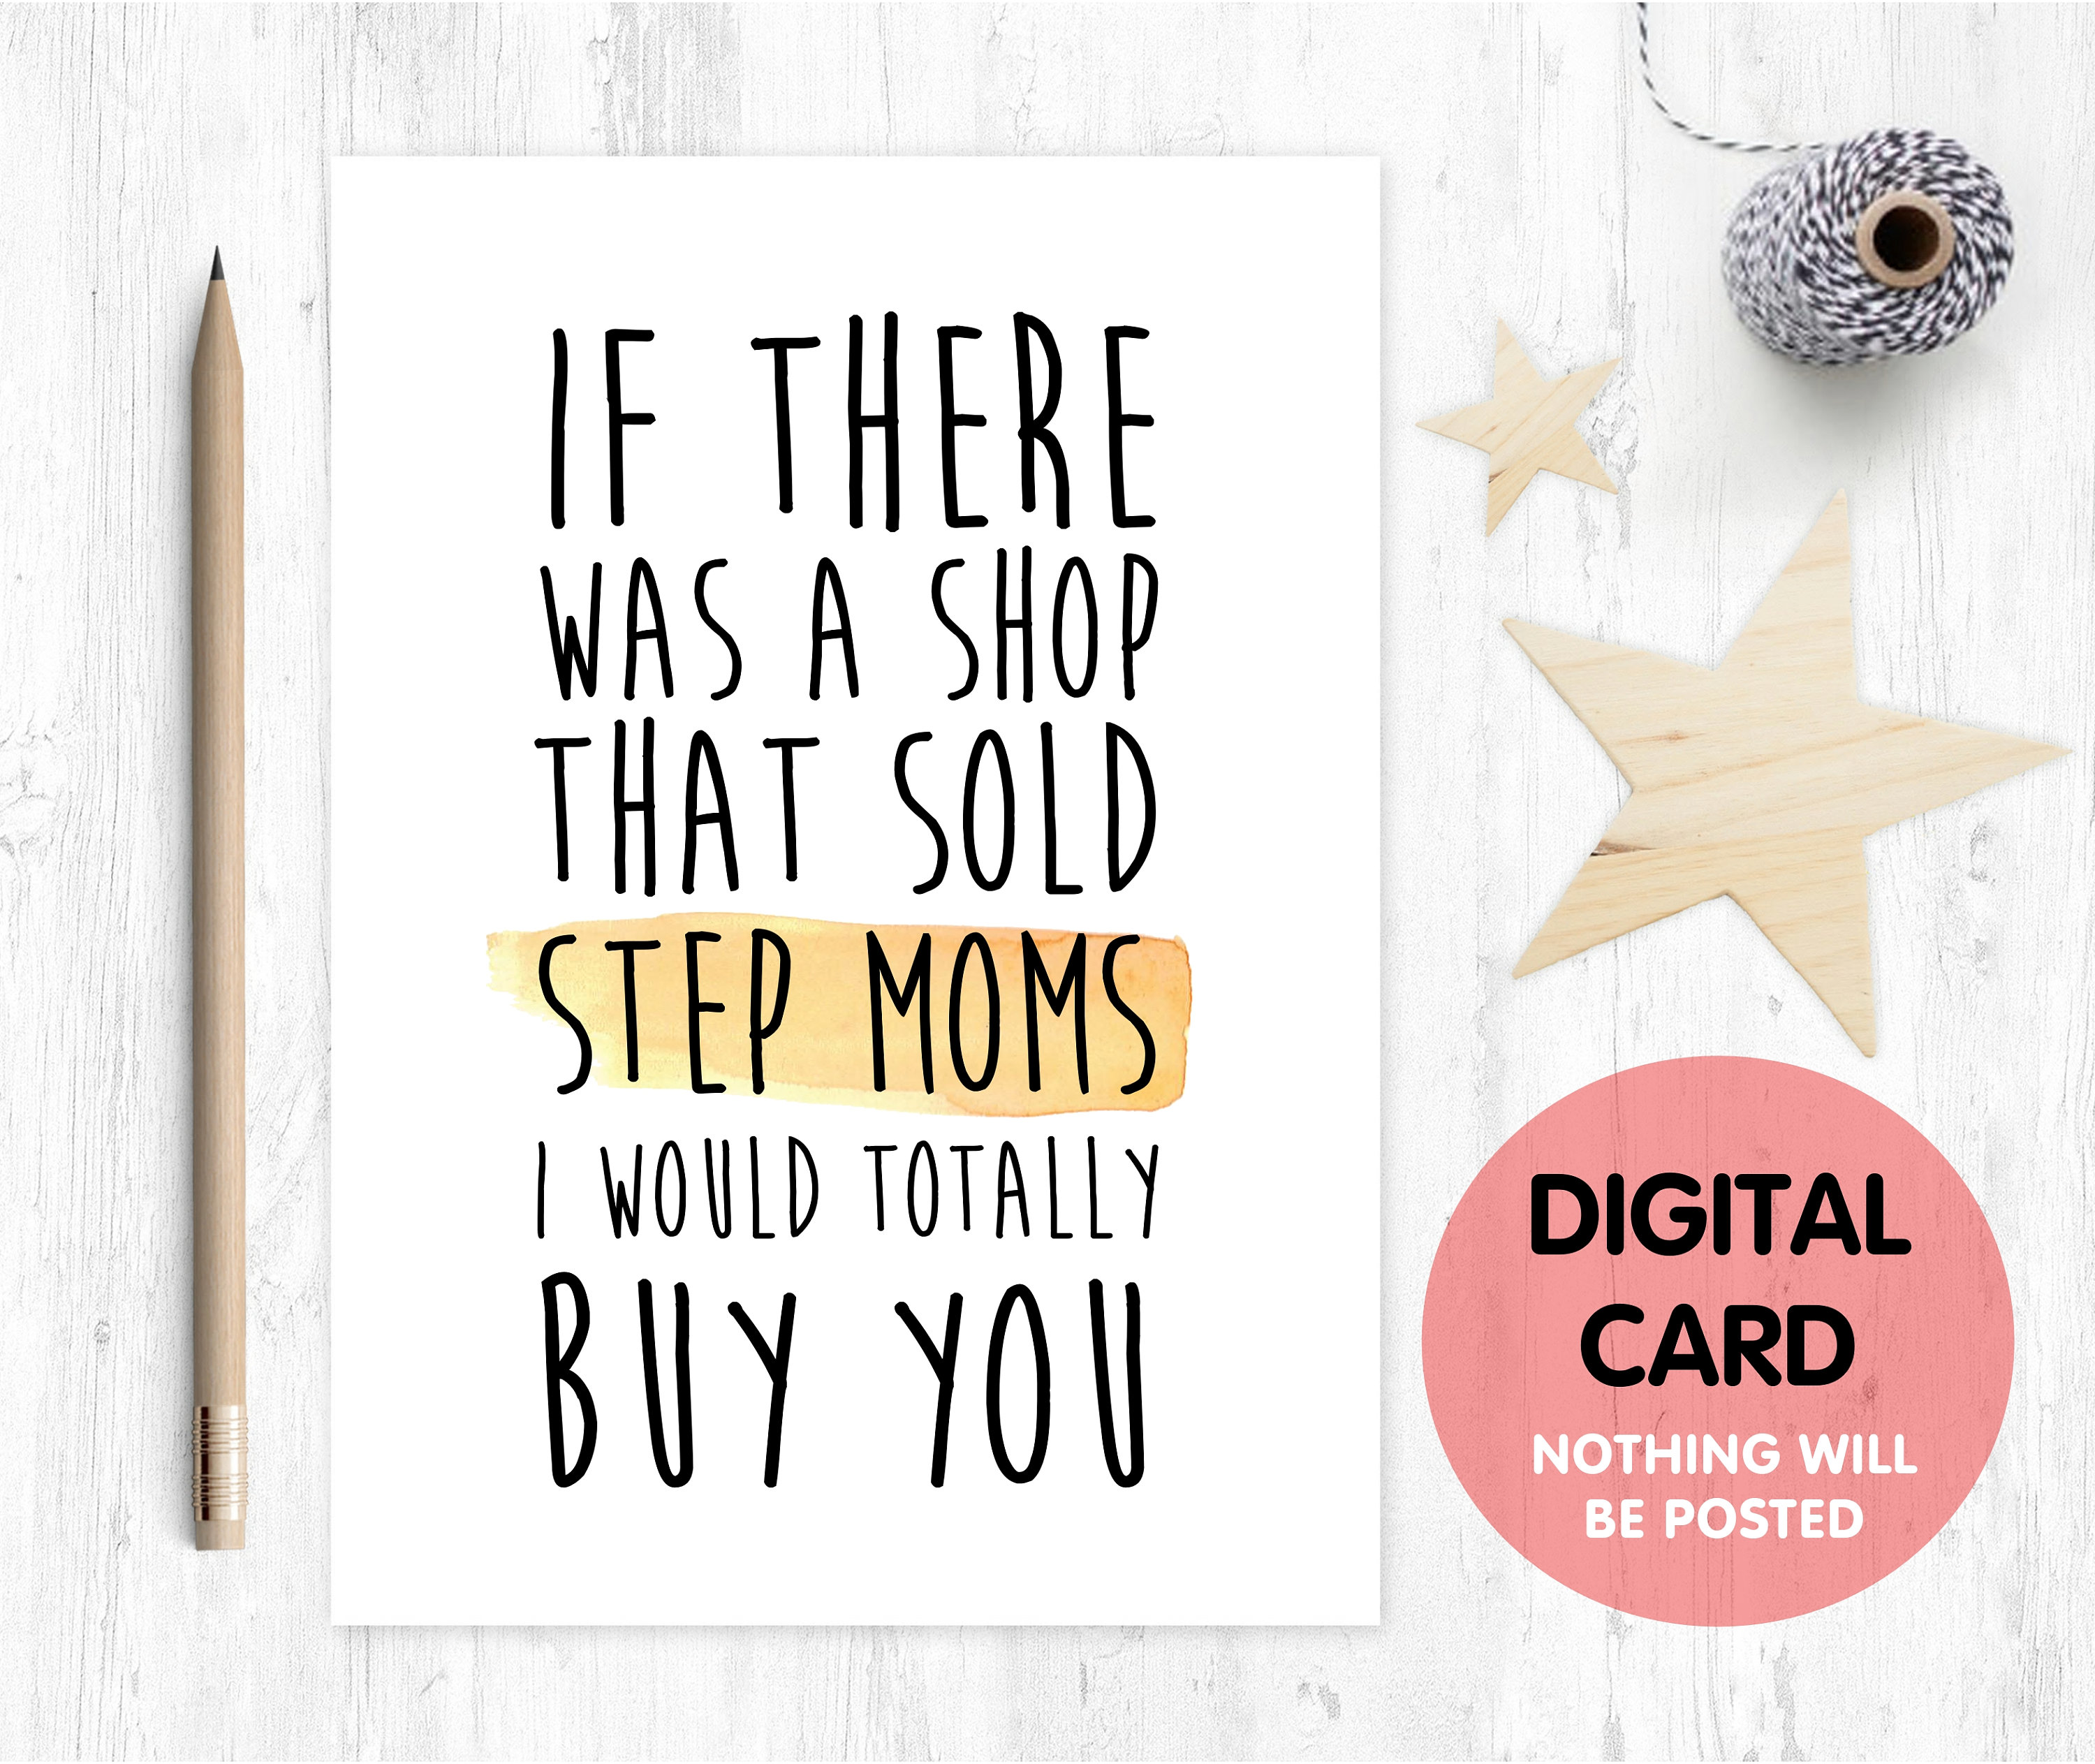 Stepmom Mothers Day Card Printable Digital Download Thanks Birthday If There Was A Shop That Sold Stepmoms